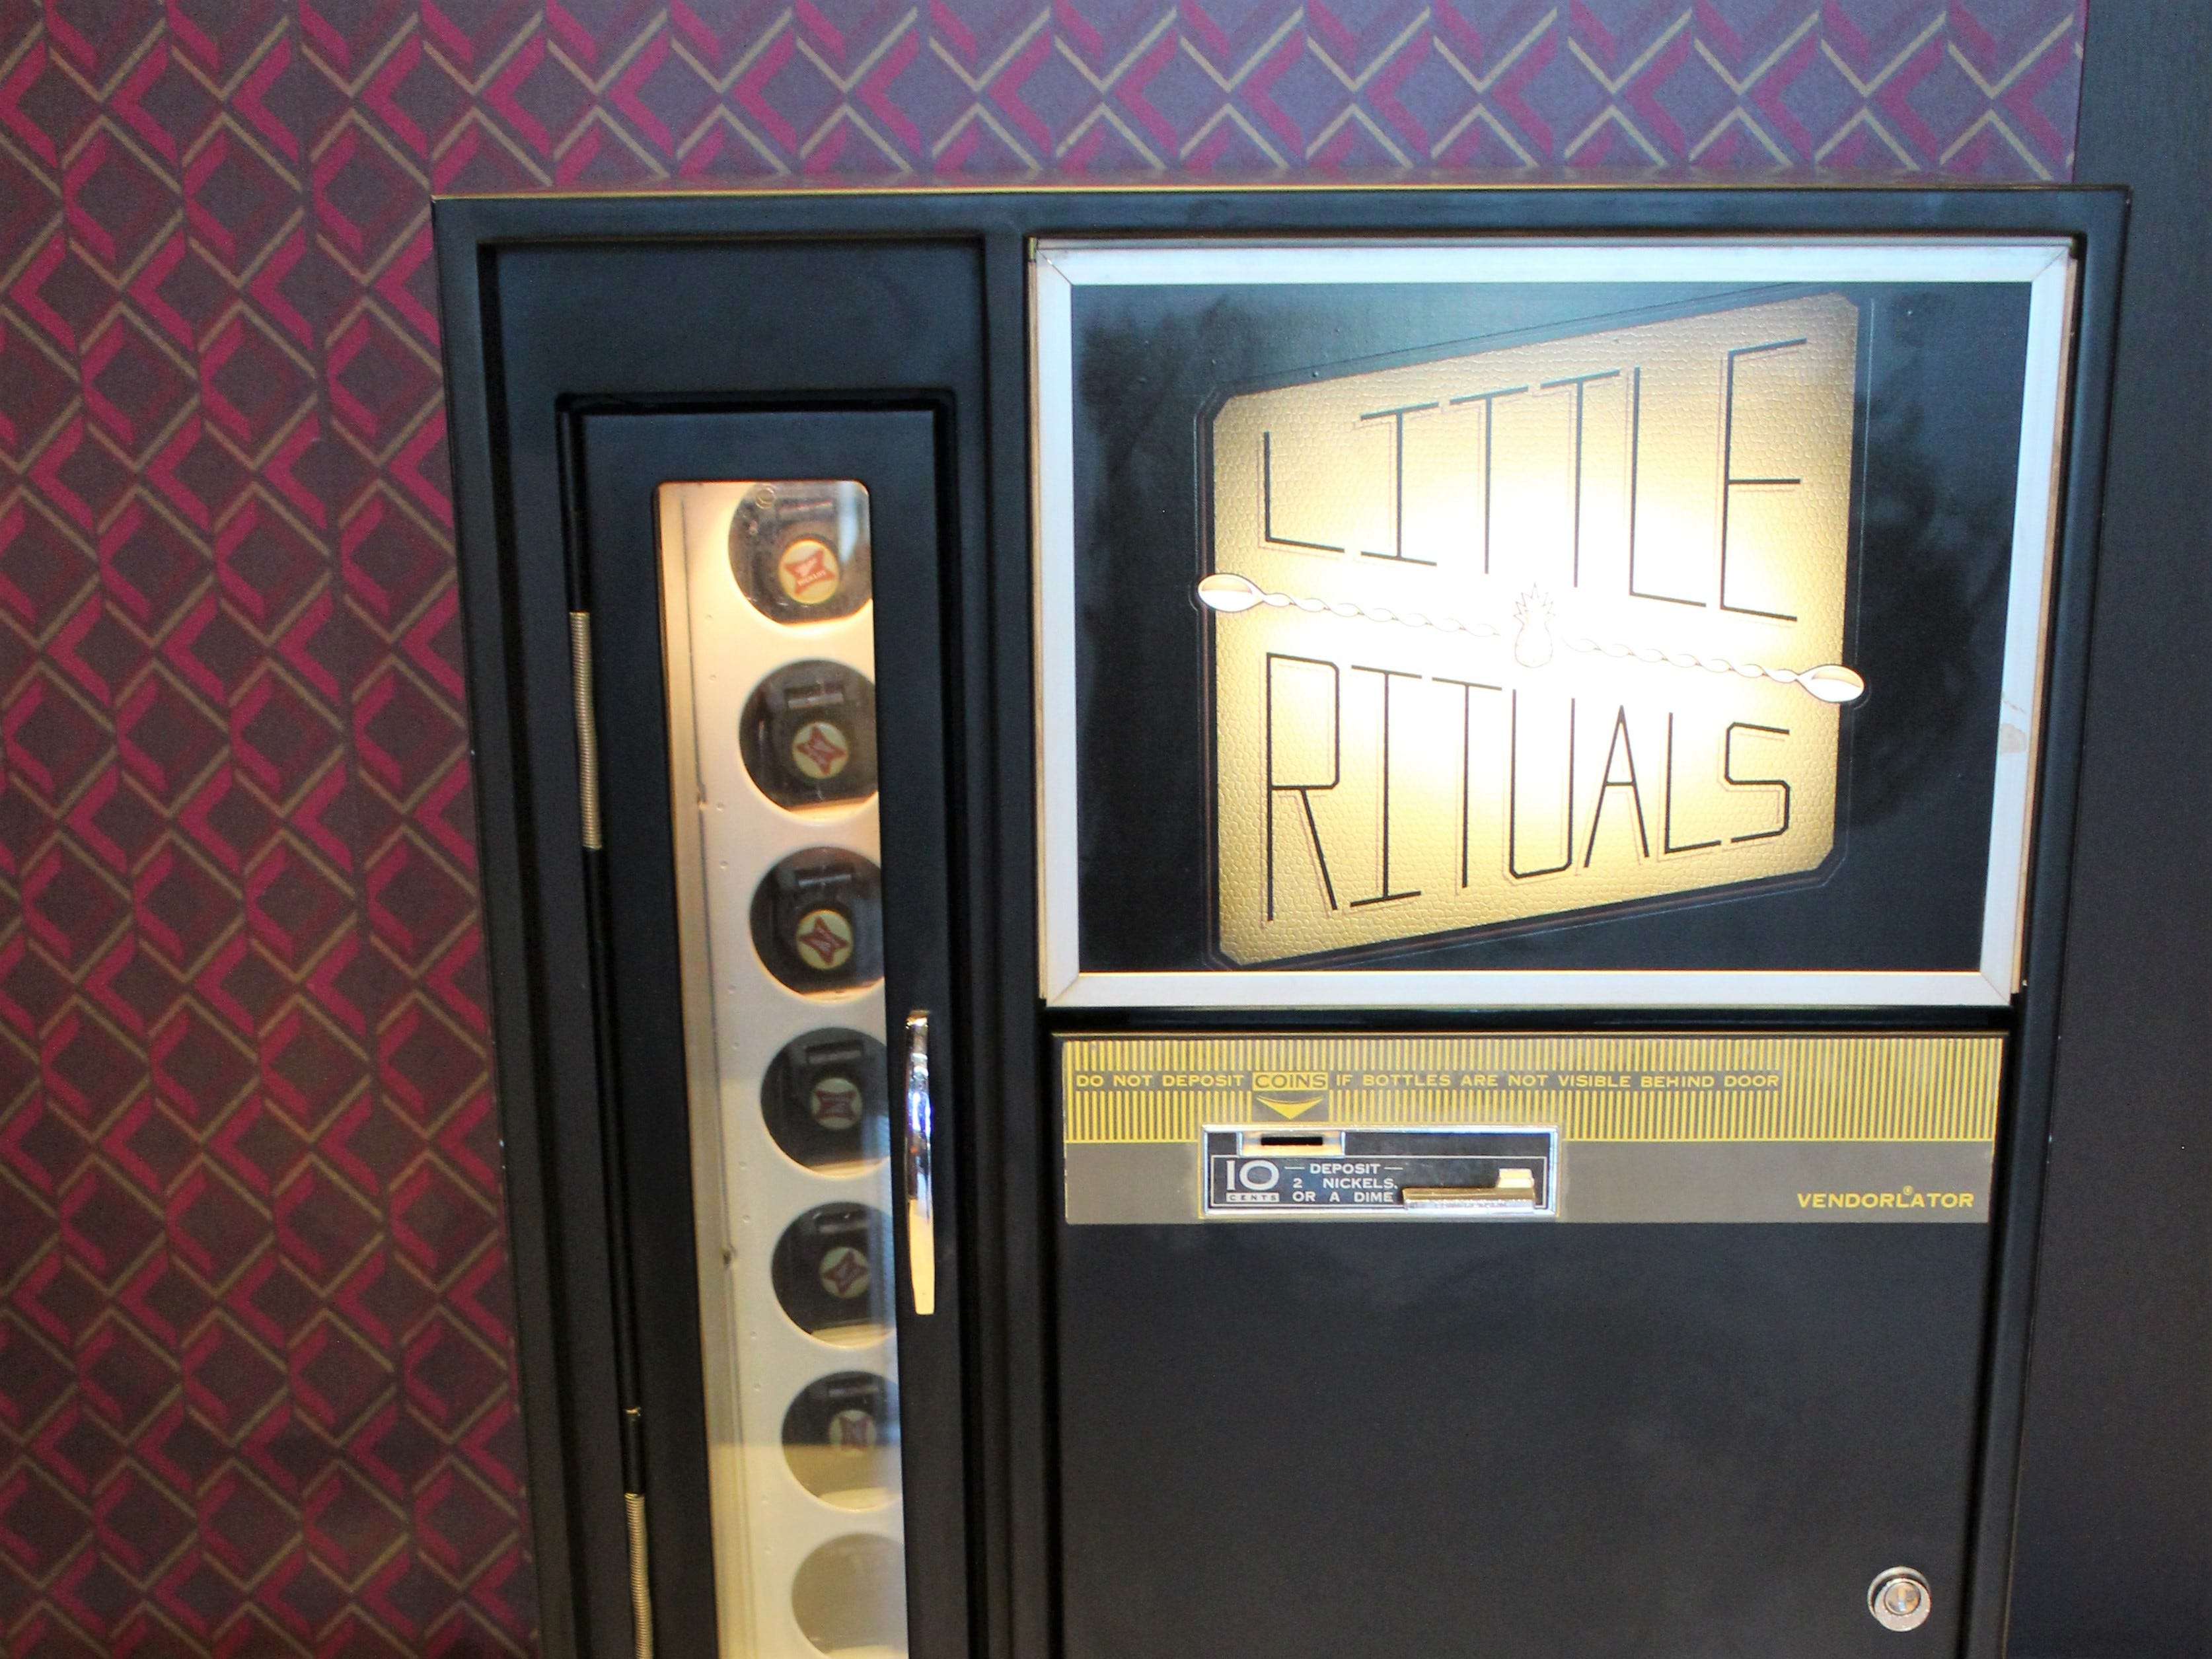 The lobby at Little Rituals, located inside the Courtyard by Marriott Phoenix Downtown, offers a retro-fitted soda vending machine that now dispenses glass bottles of beer.